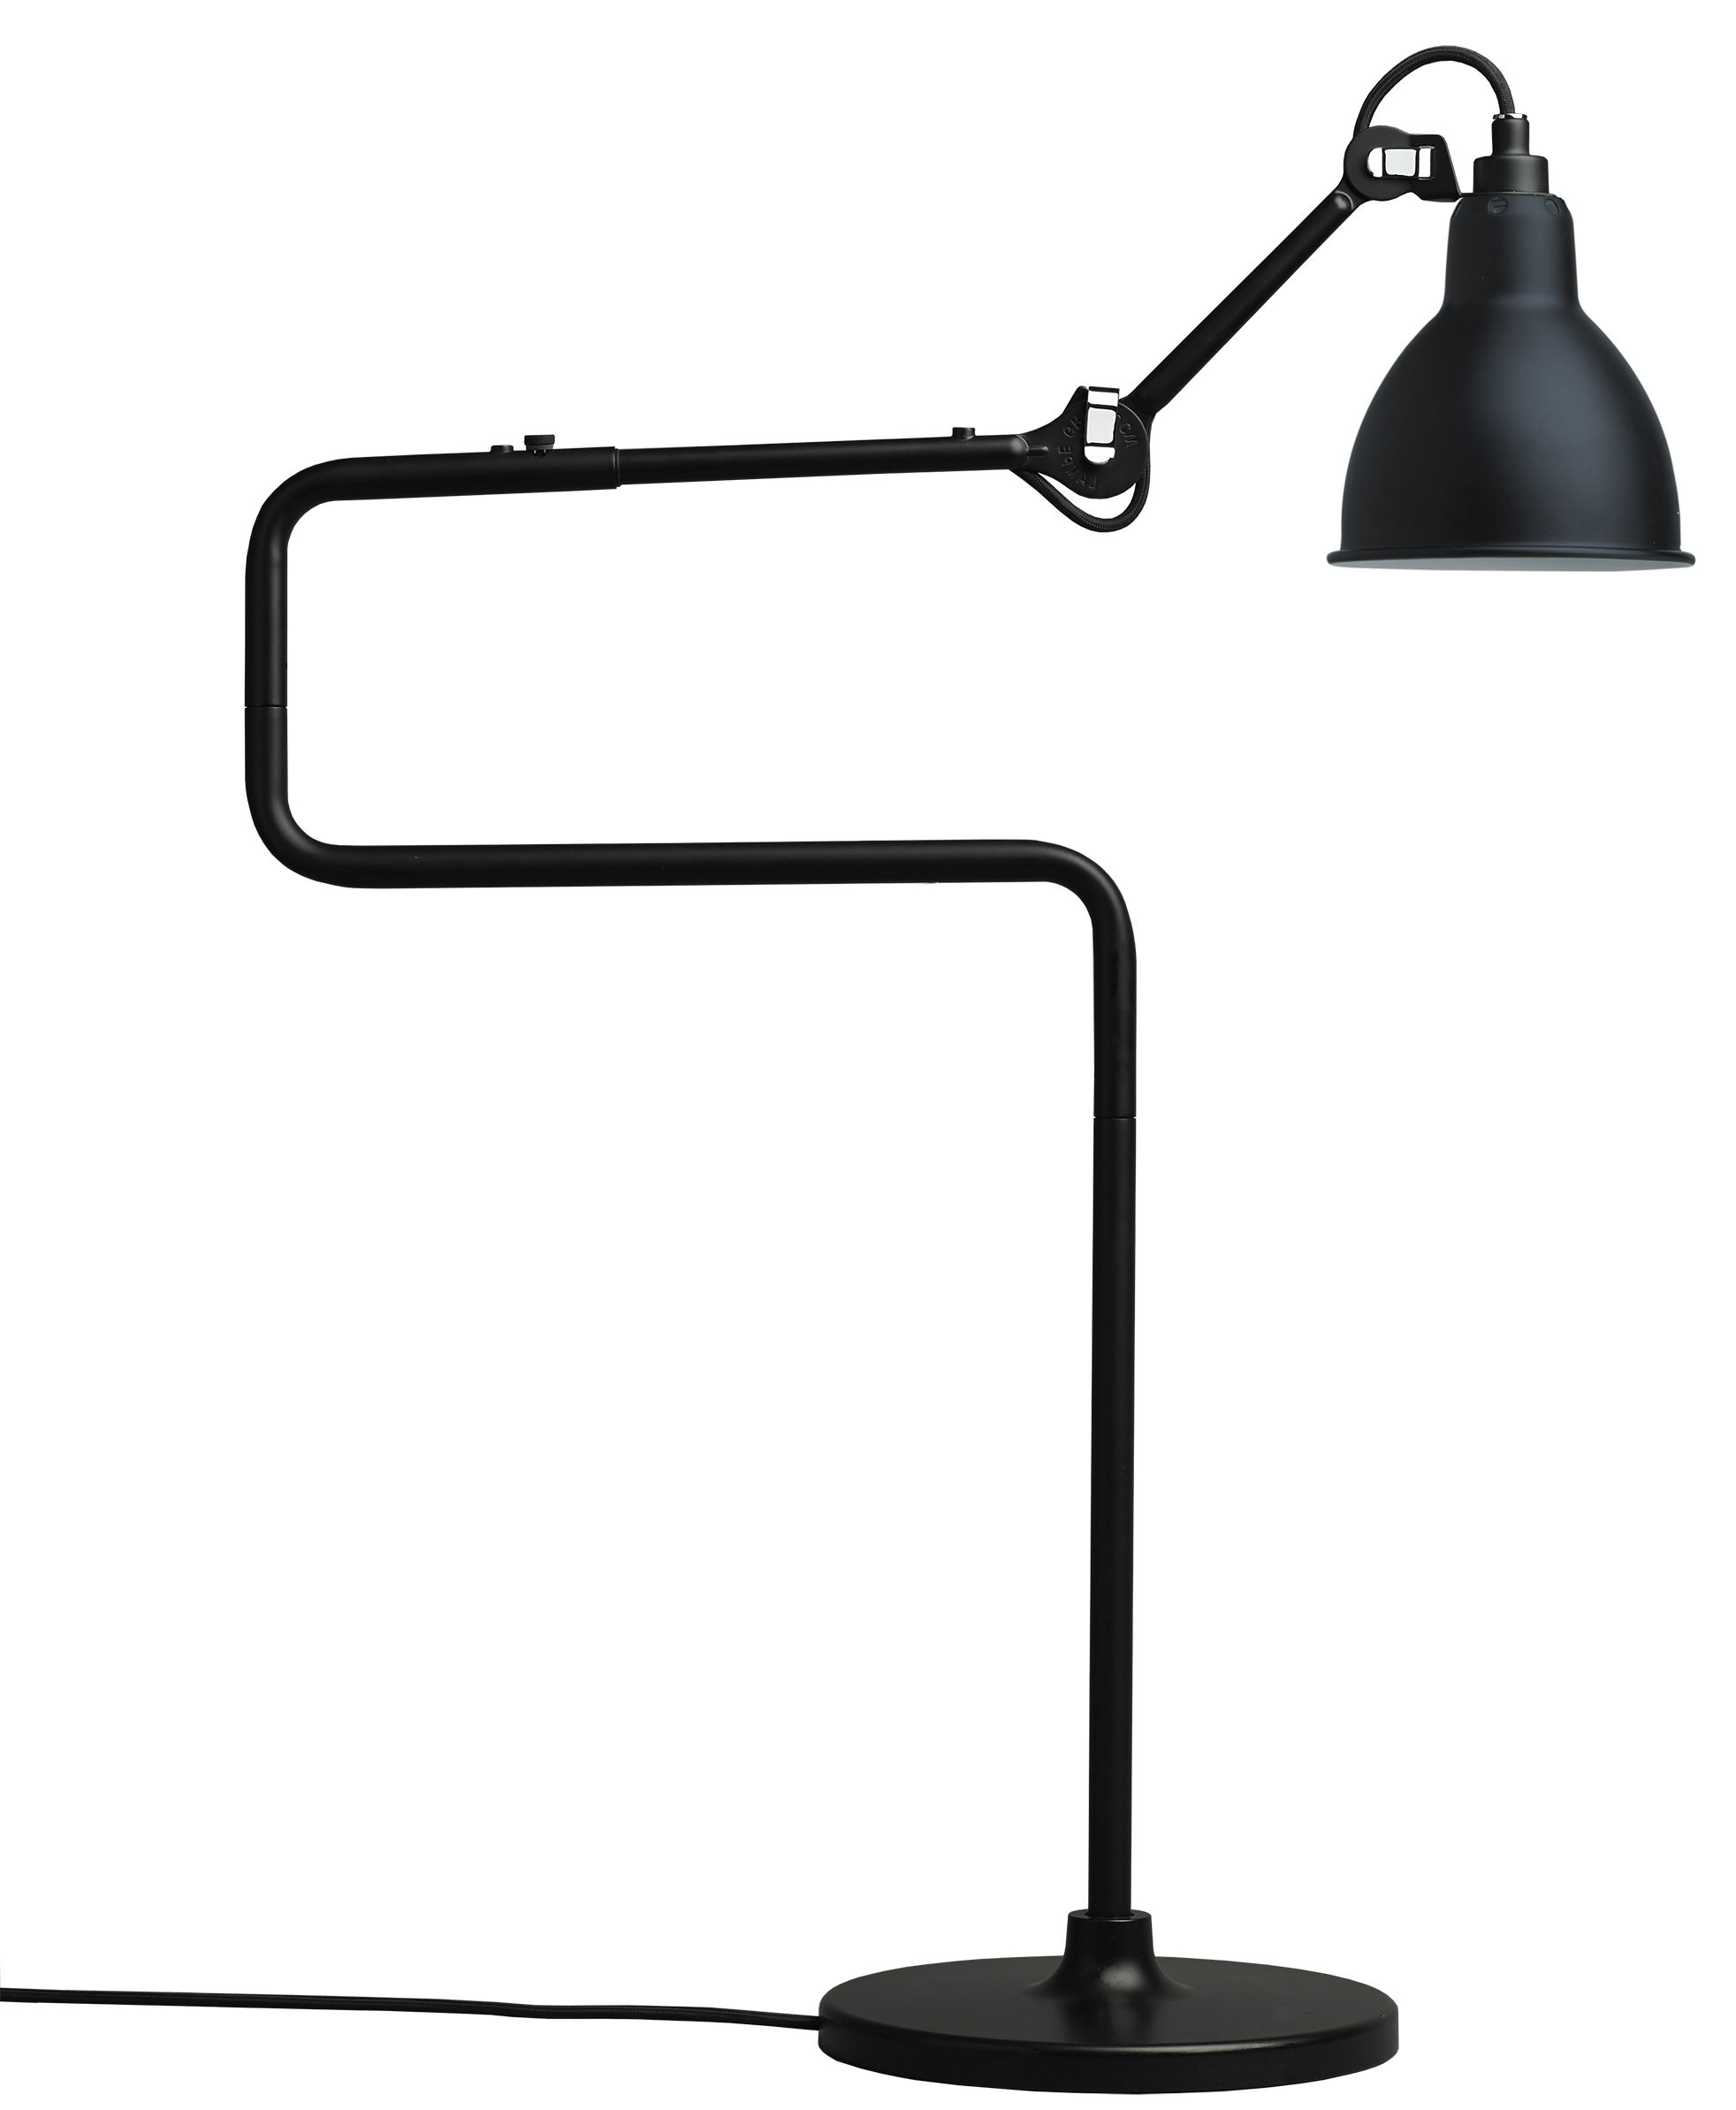 Lighting - Table Lamps - N°317 Table lamp by DCW éditions - Black - Steel